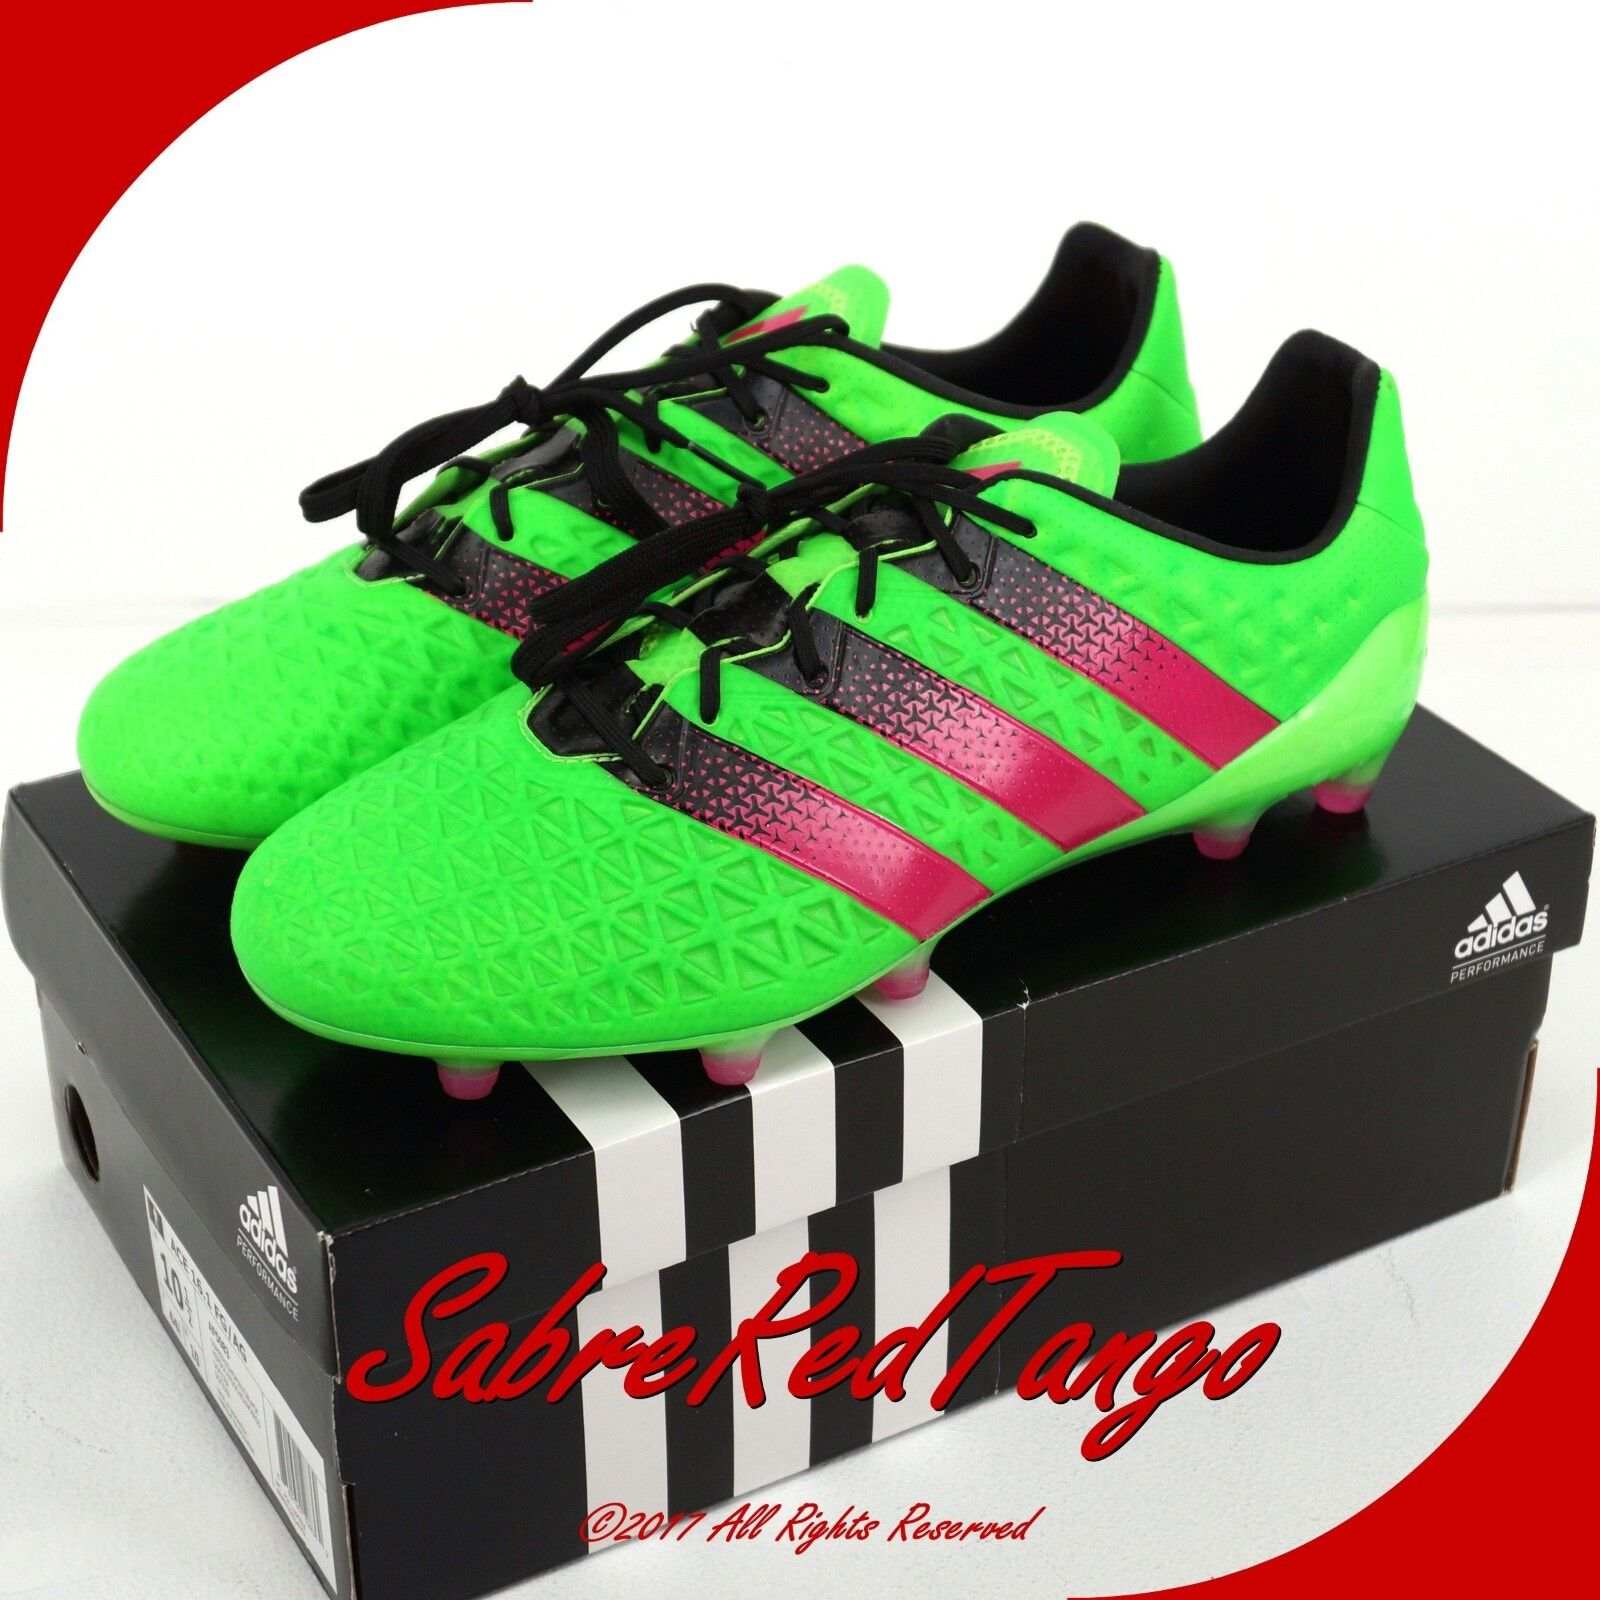 huge discount 24631 c82fa NWT ADIDAS MEN'S ACE 16.1 FG/AG SOCCER CLEATS SHOES SHOES ...